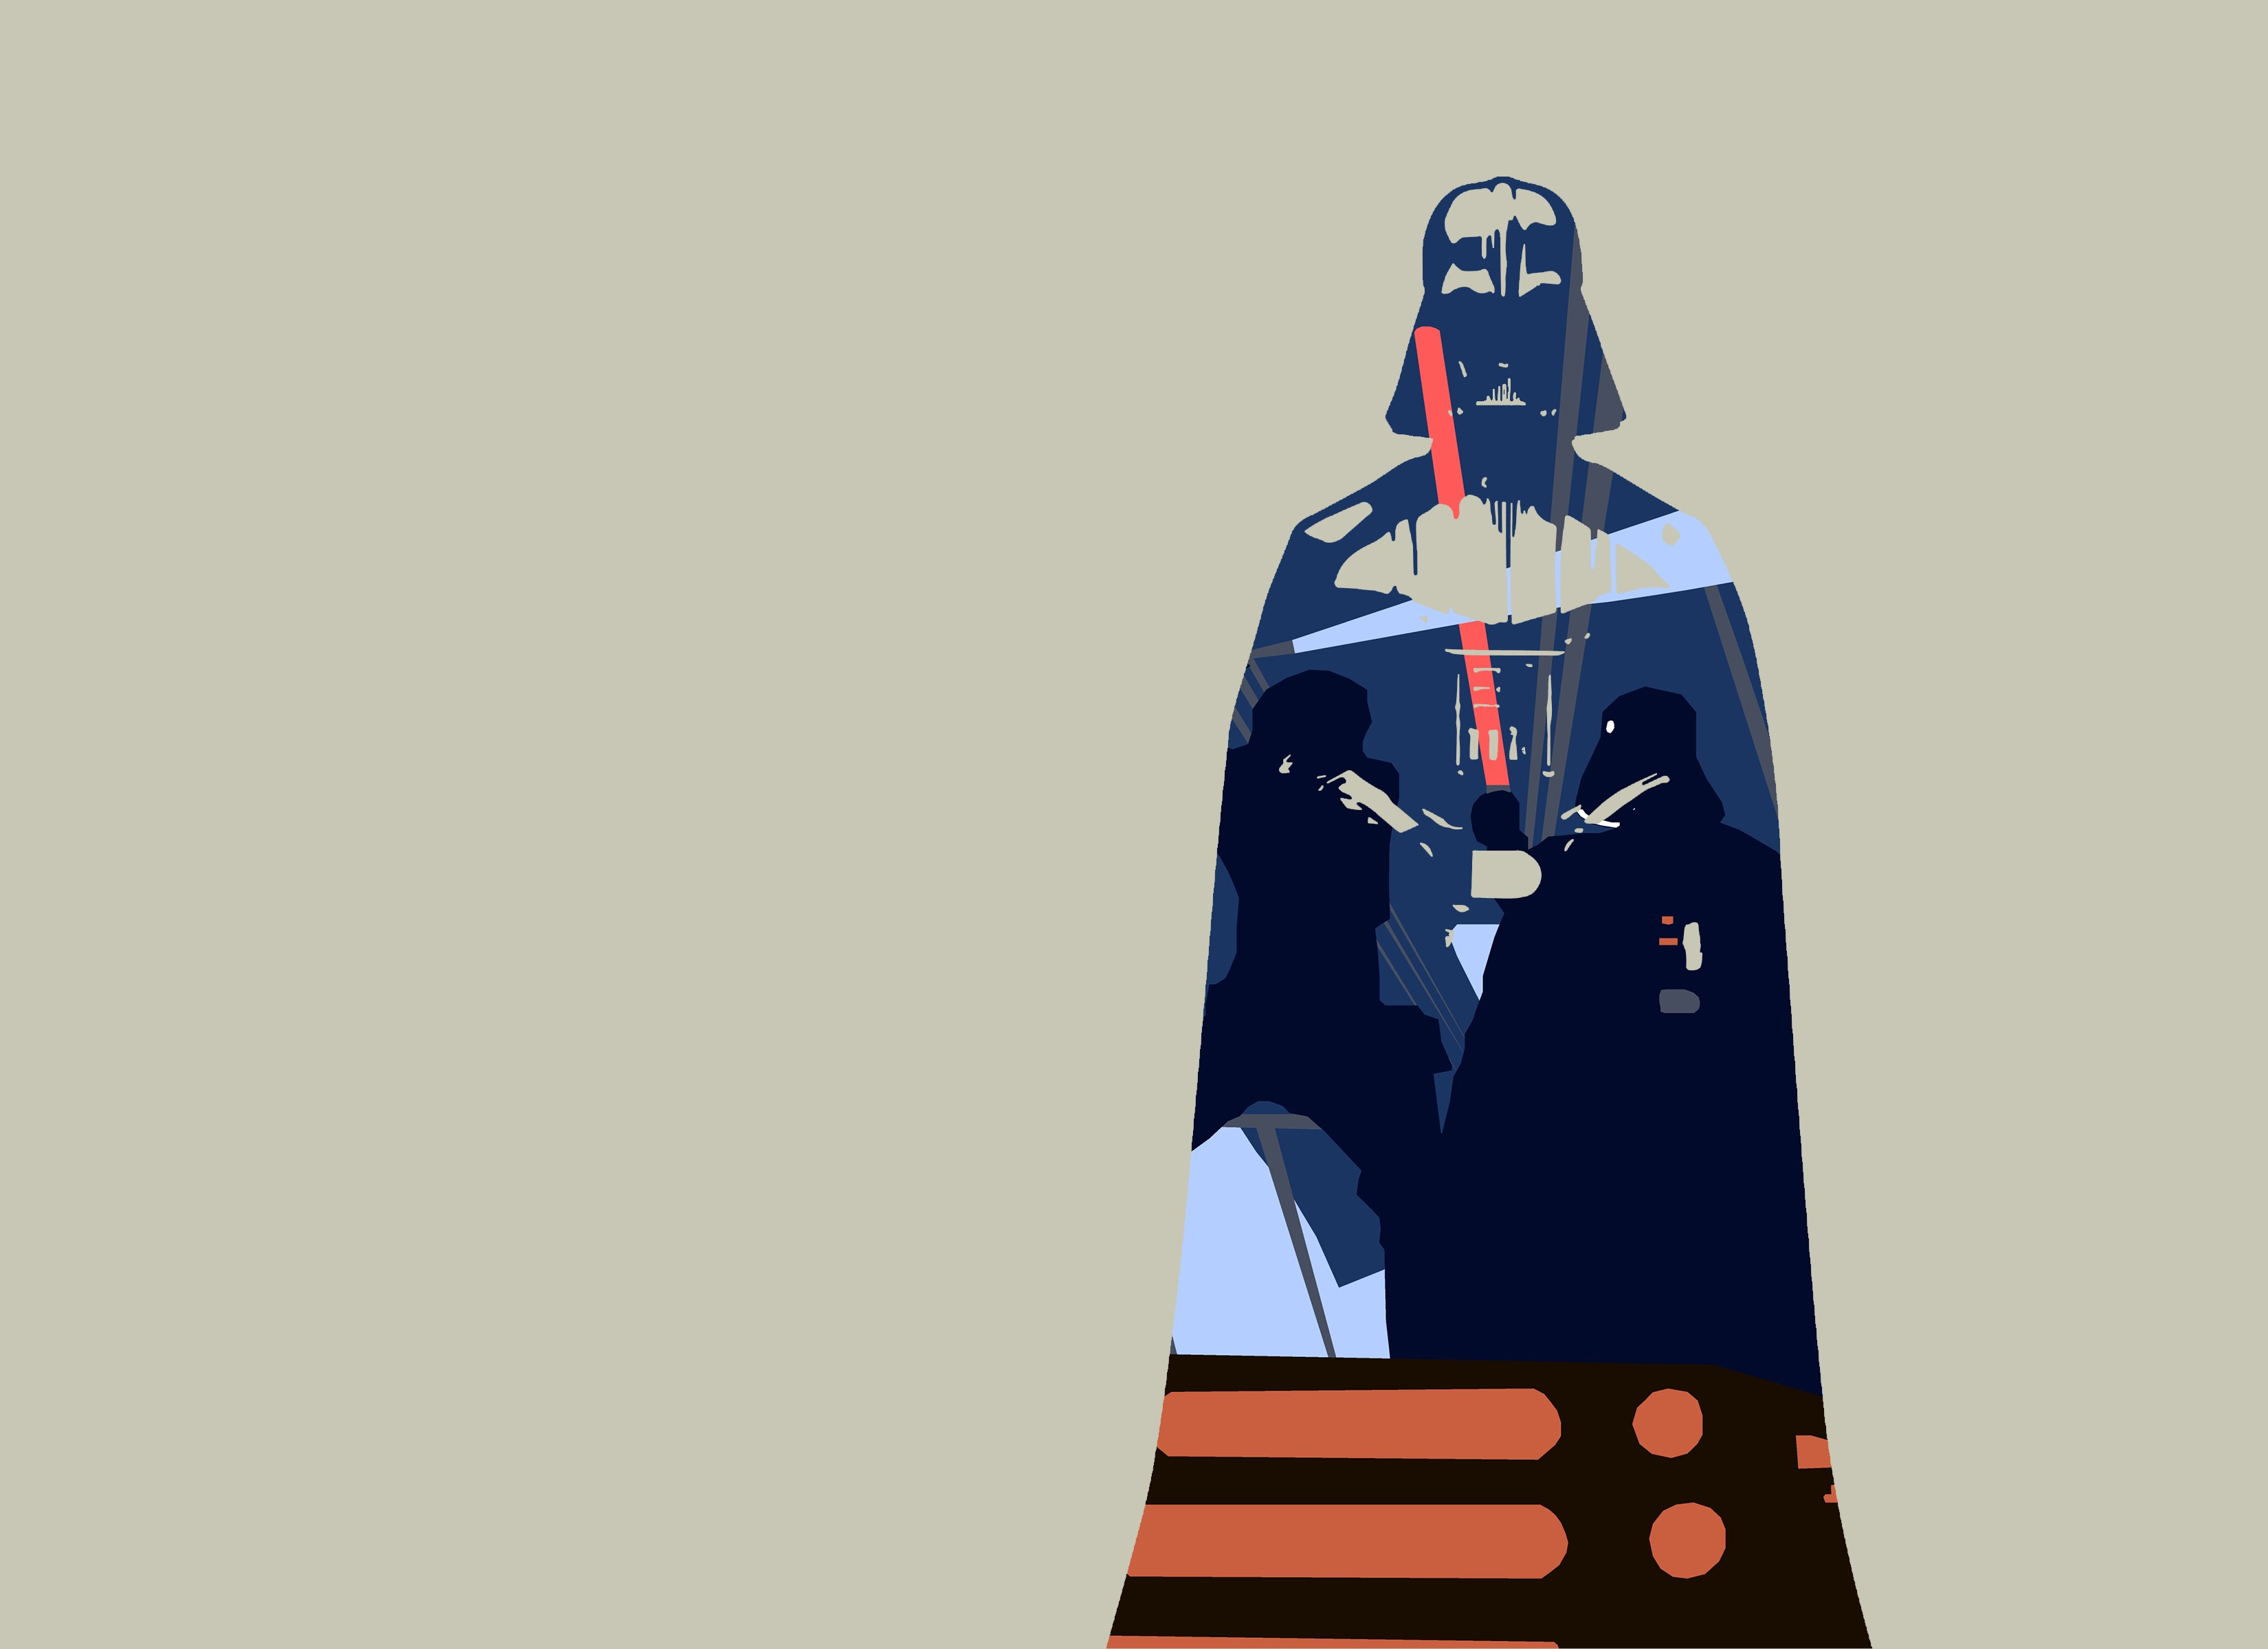 Vader 4k Wallpapers For Your Desktop Or Mobile Screen Free And